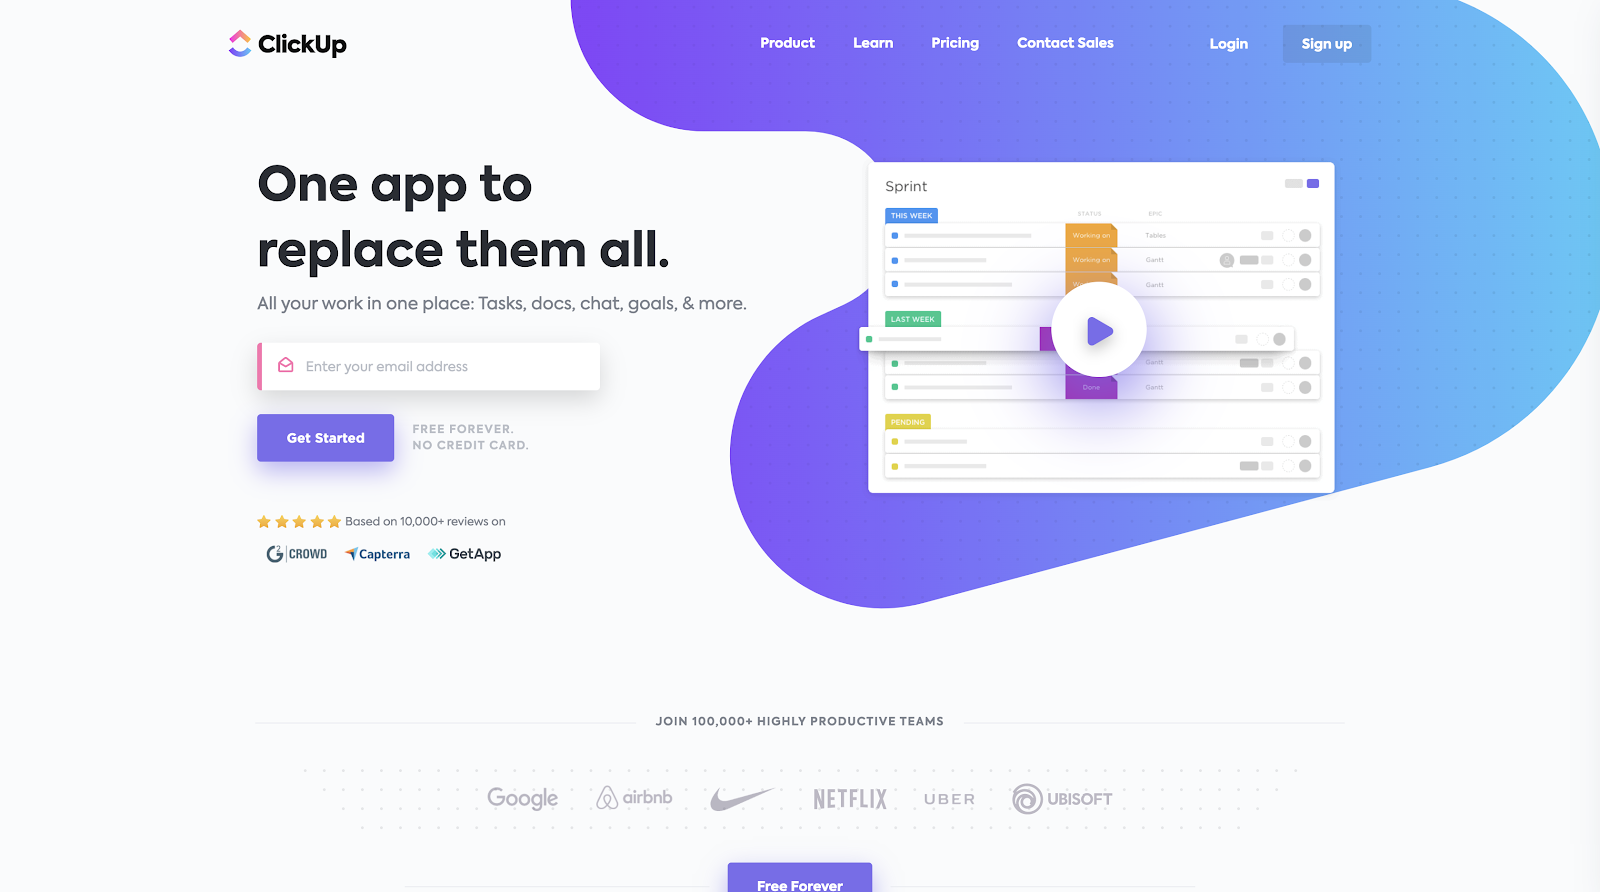 ClickUp - One app to replace them all